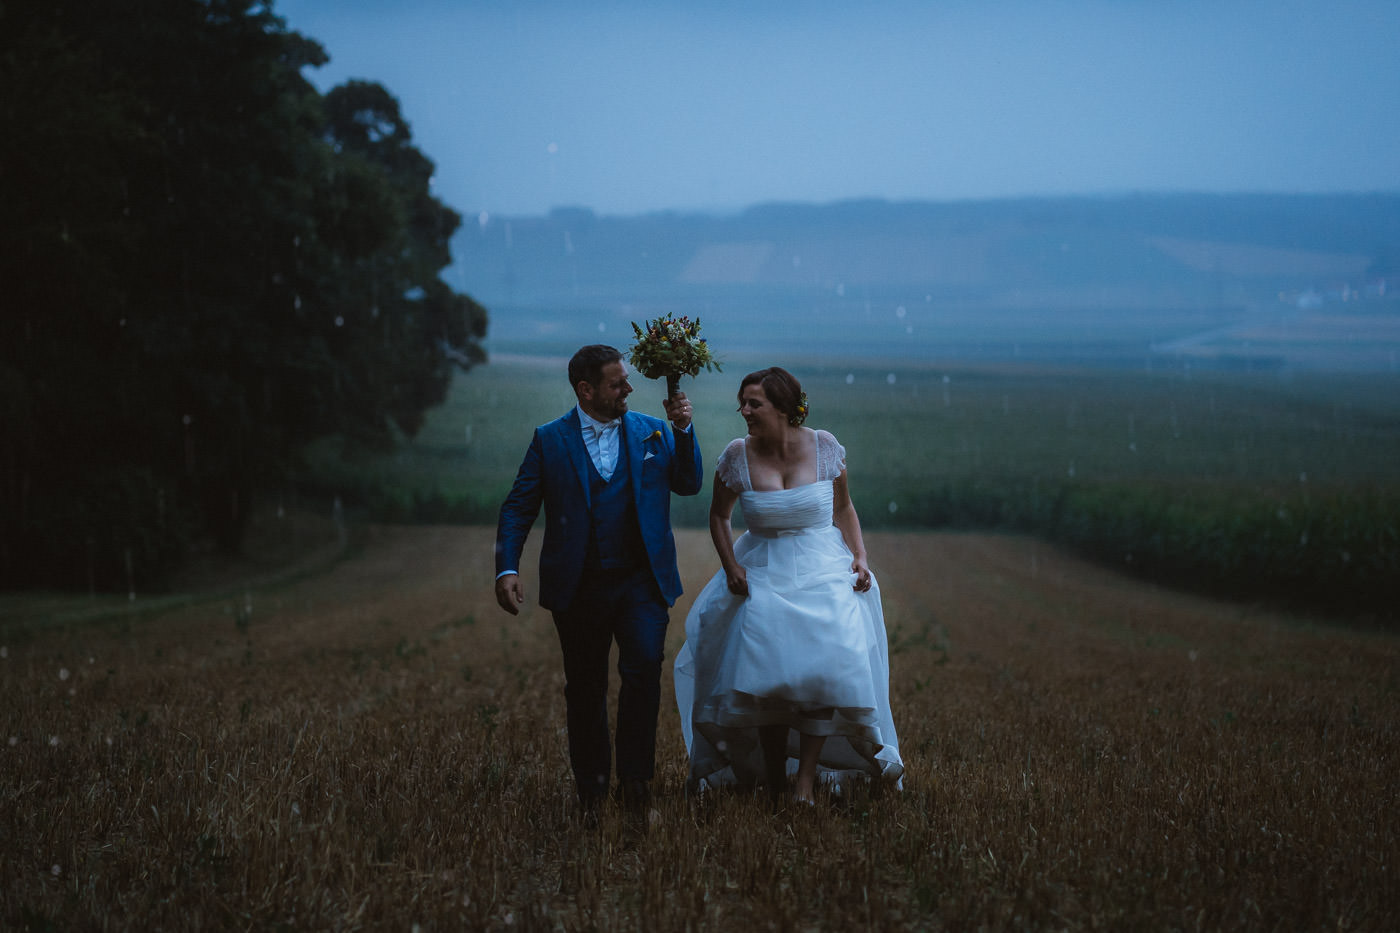 bridal couple in the pouring rain - rainy day wedding photos